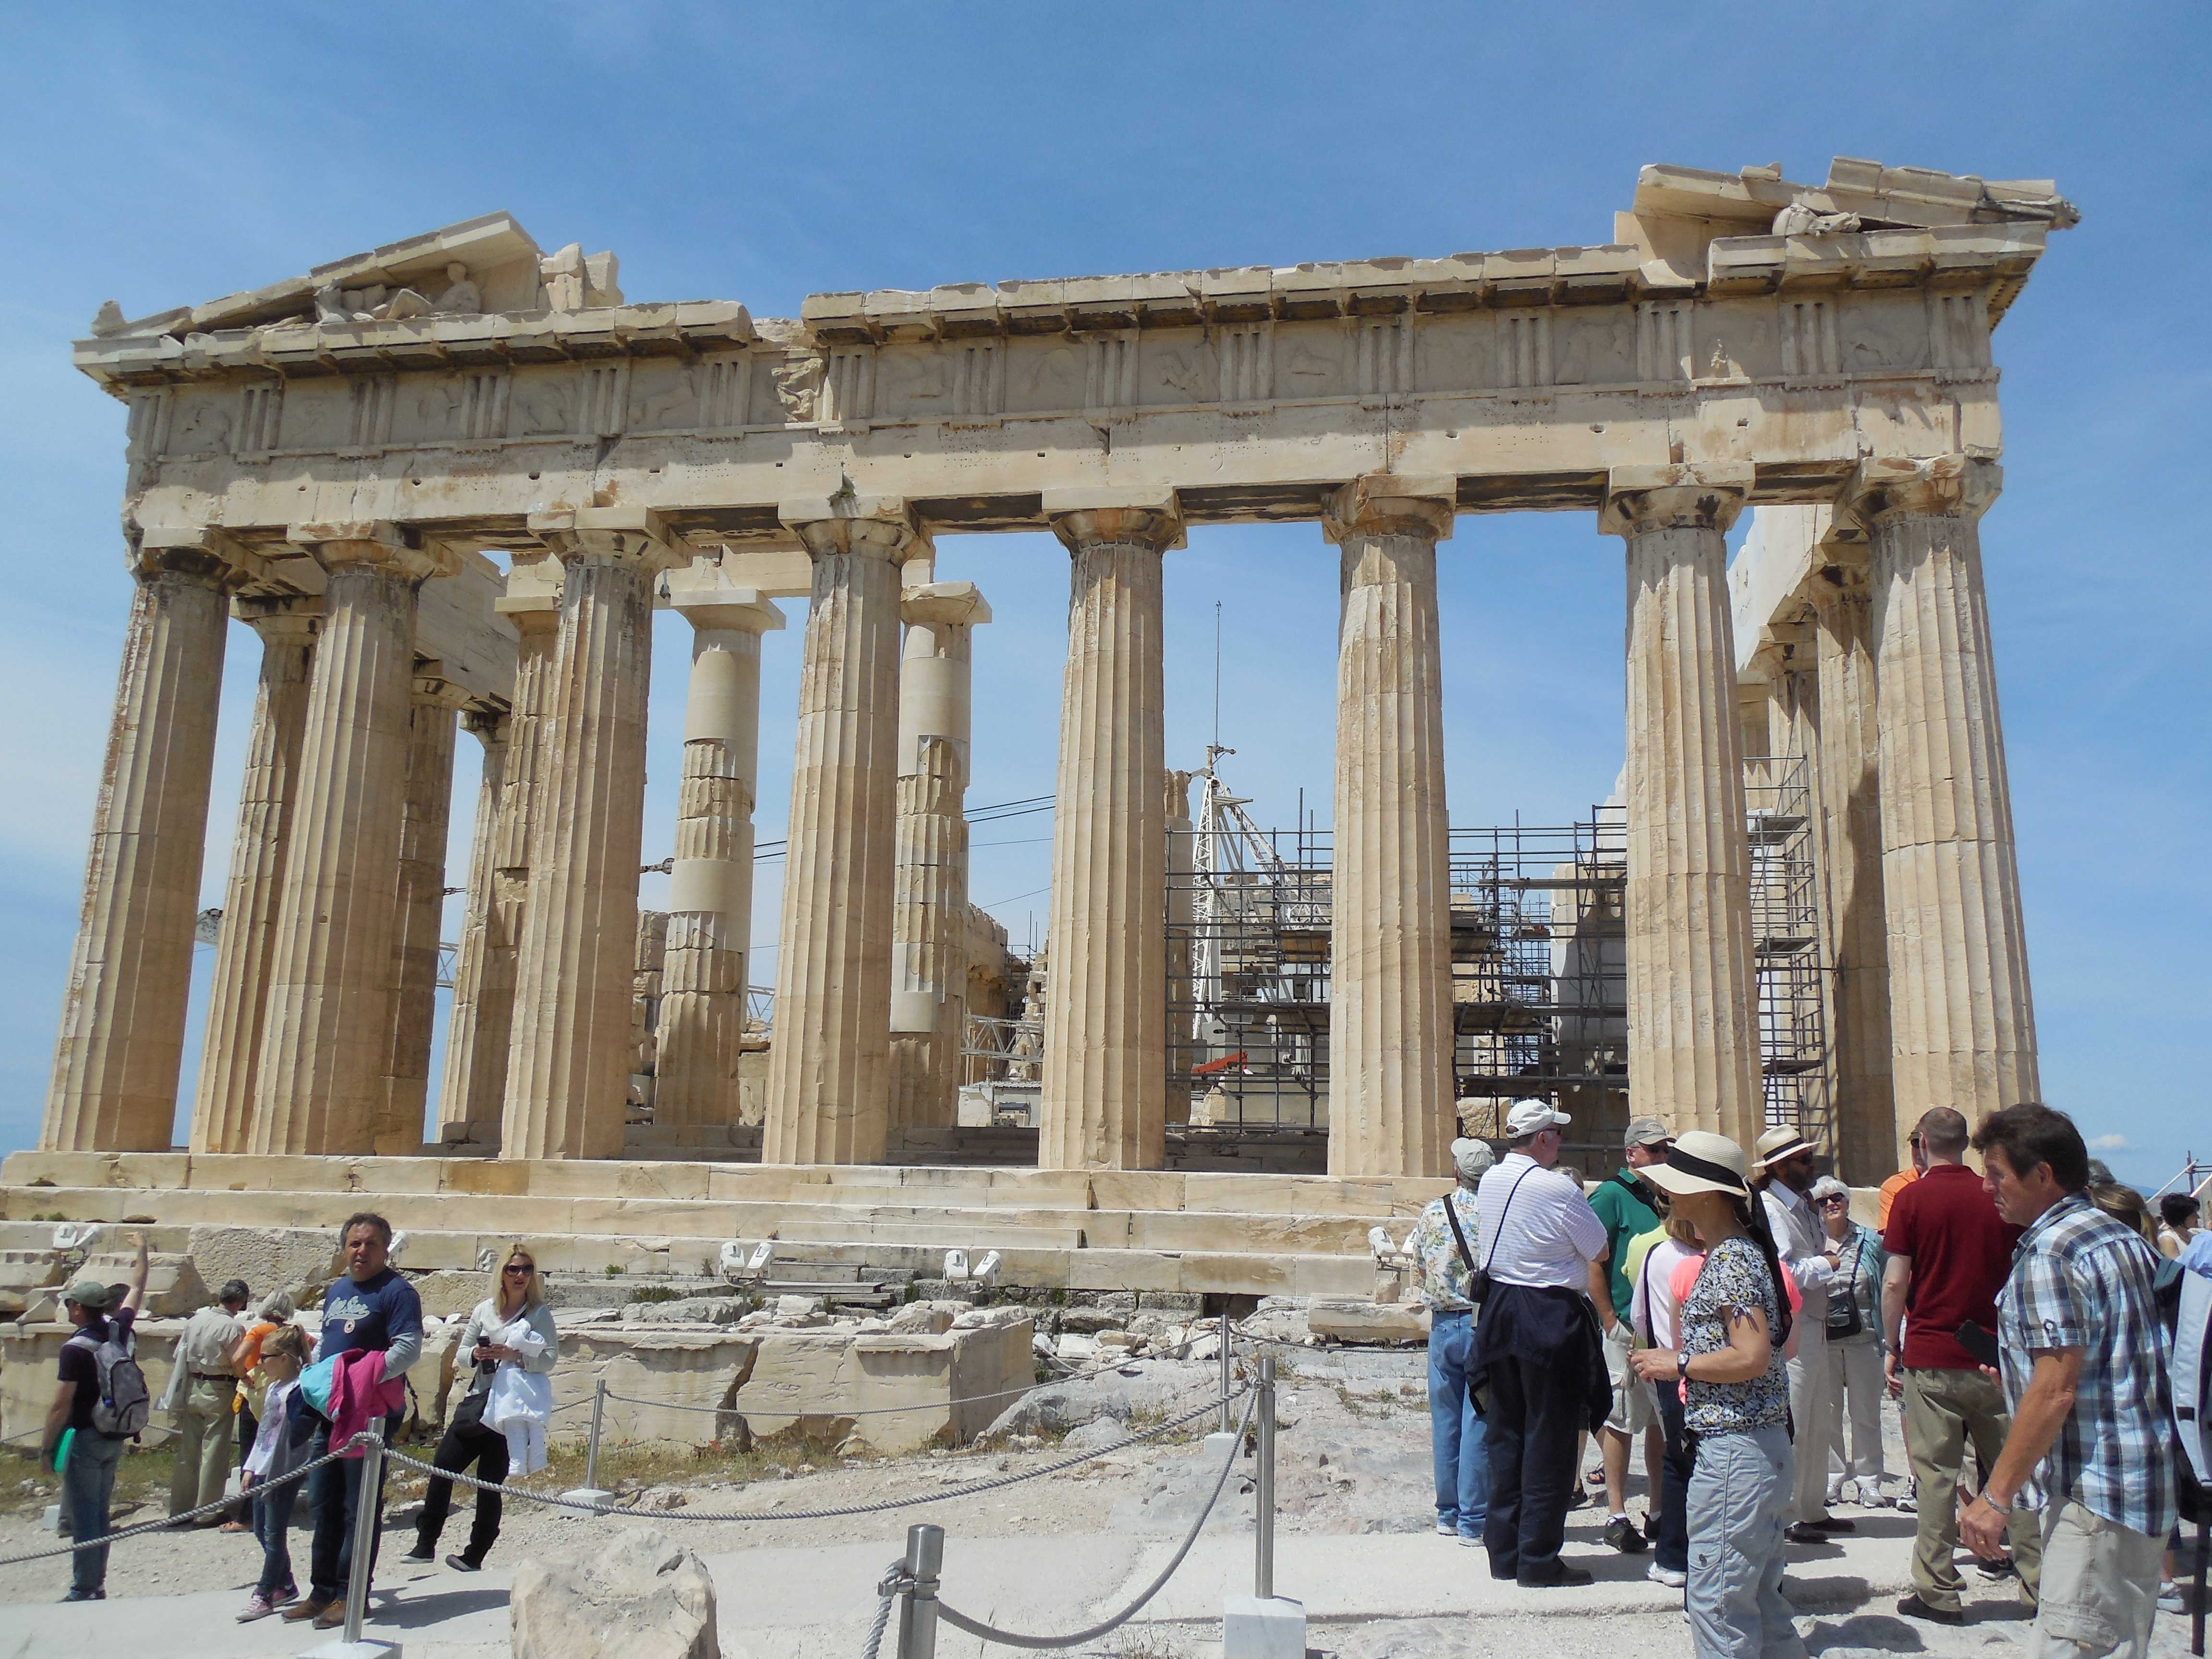 Touring Greece and its